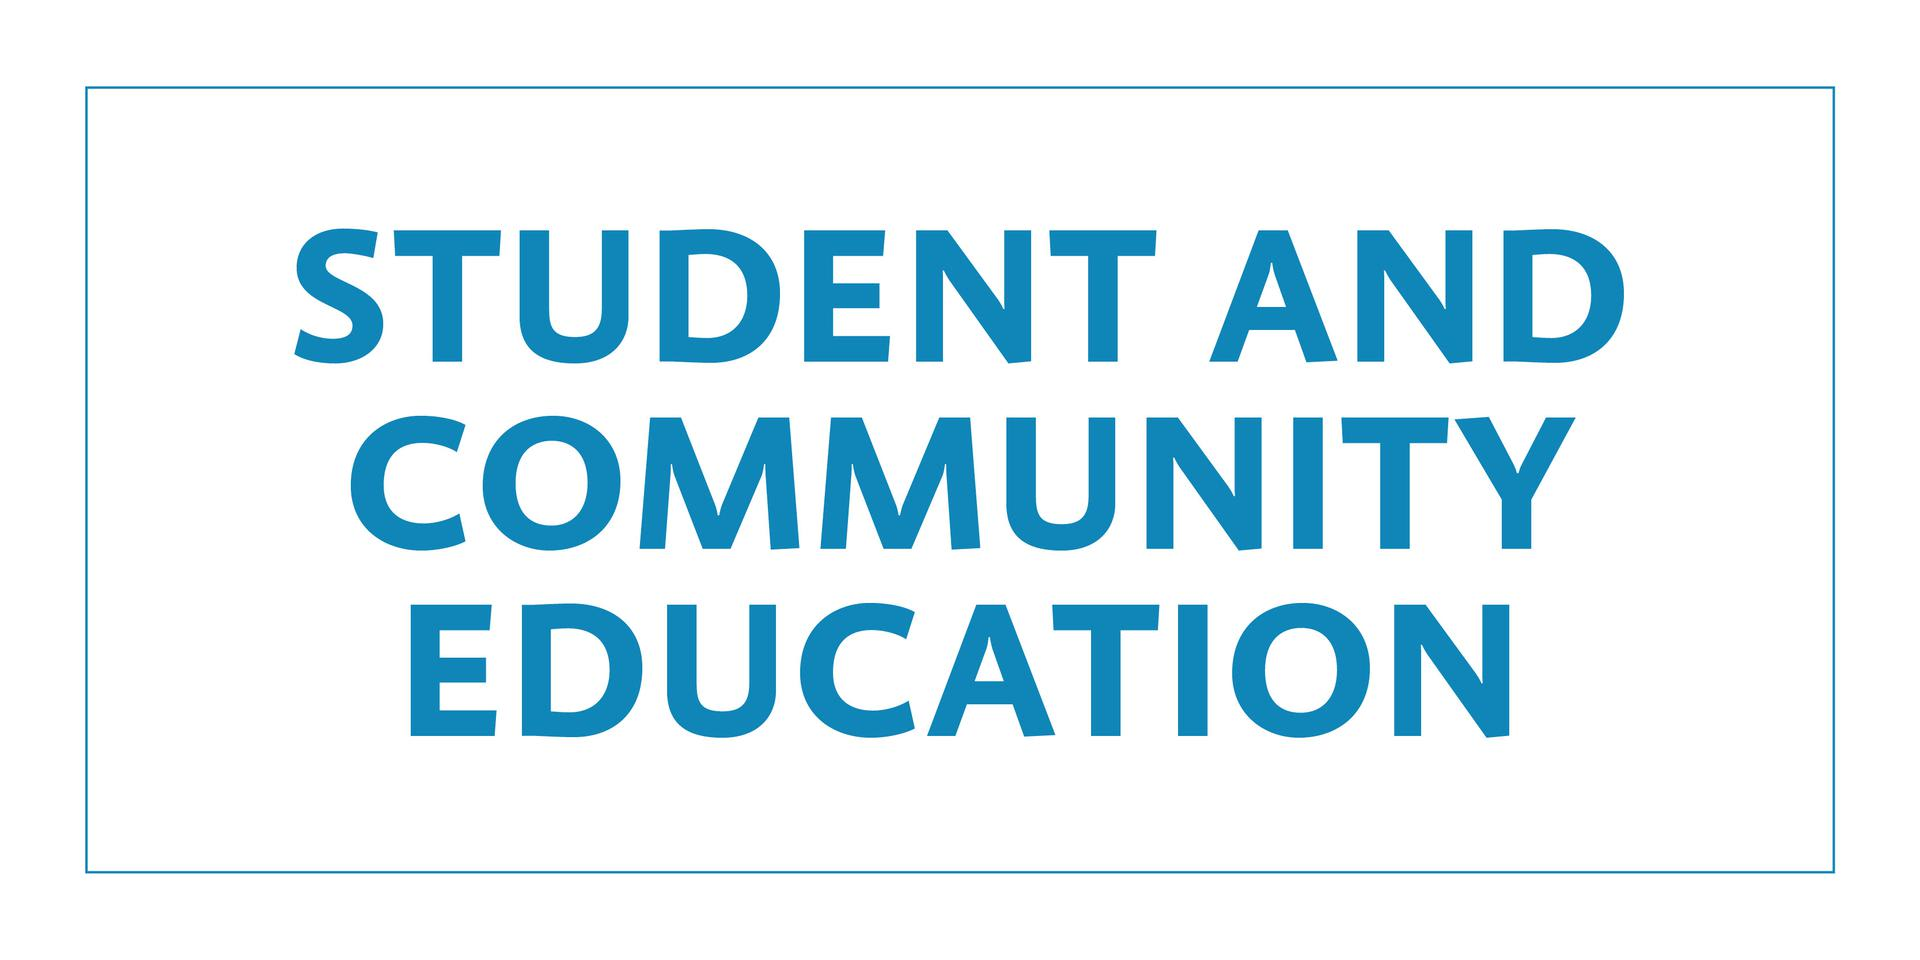 Student and Community Education